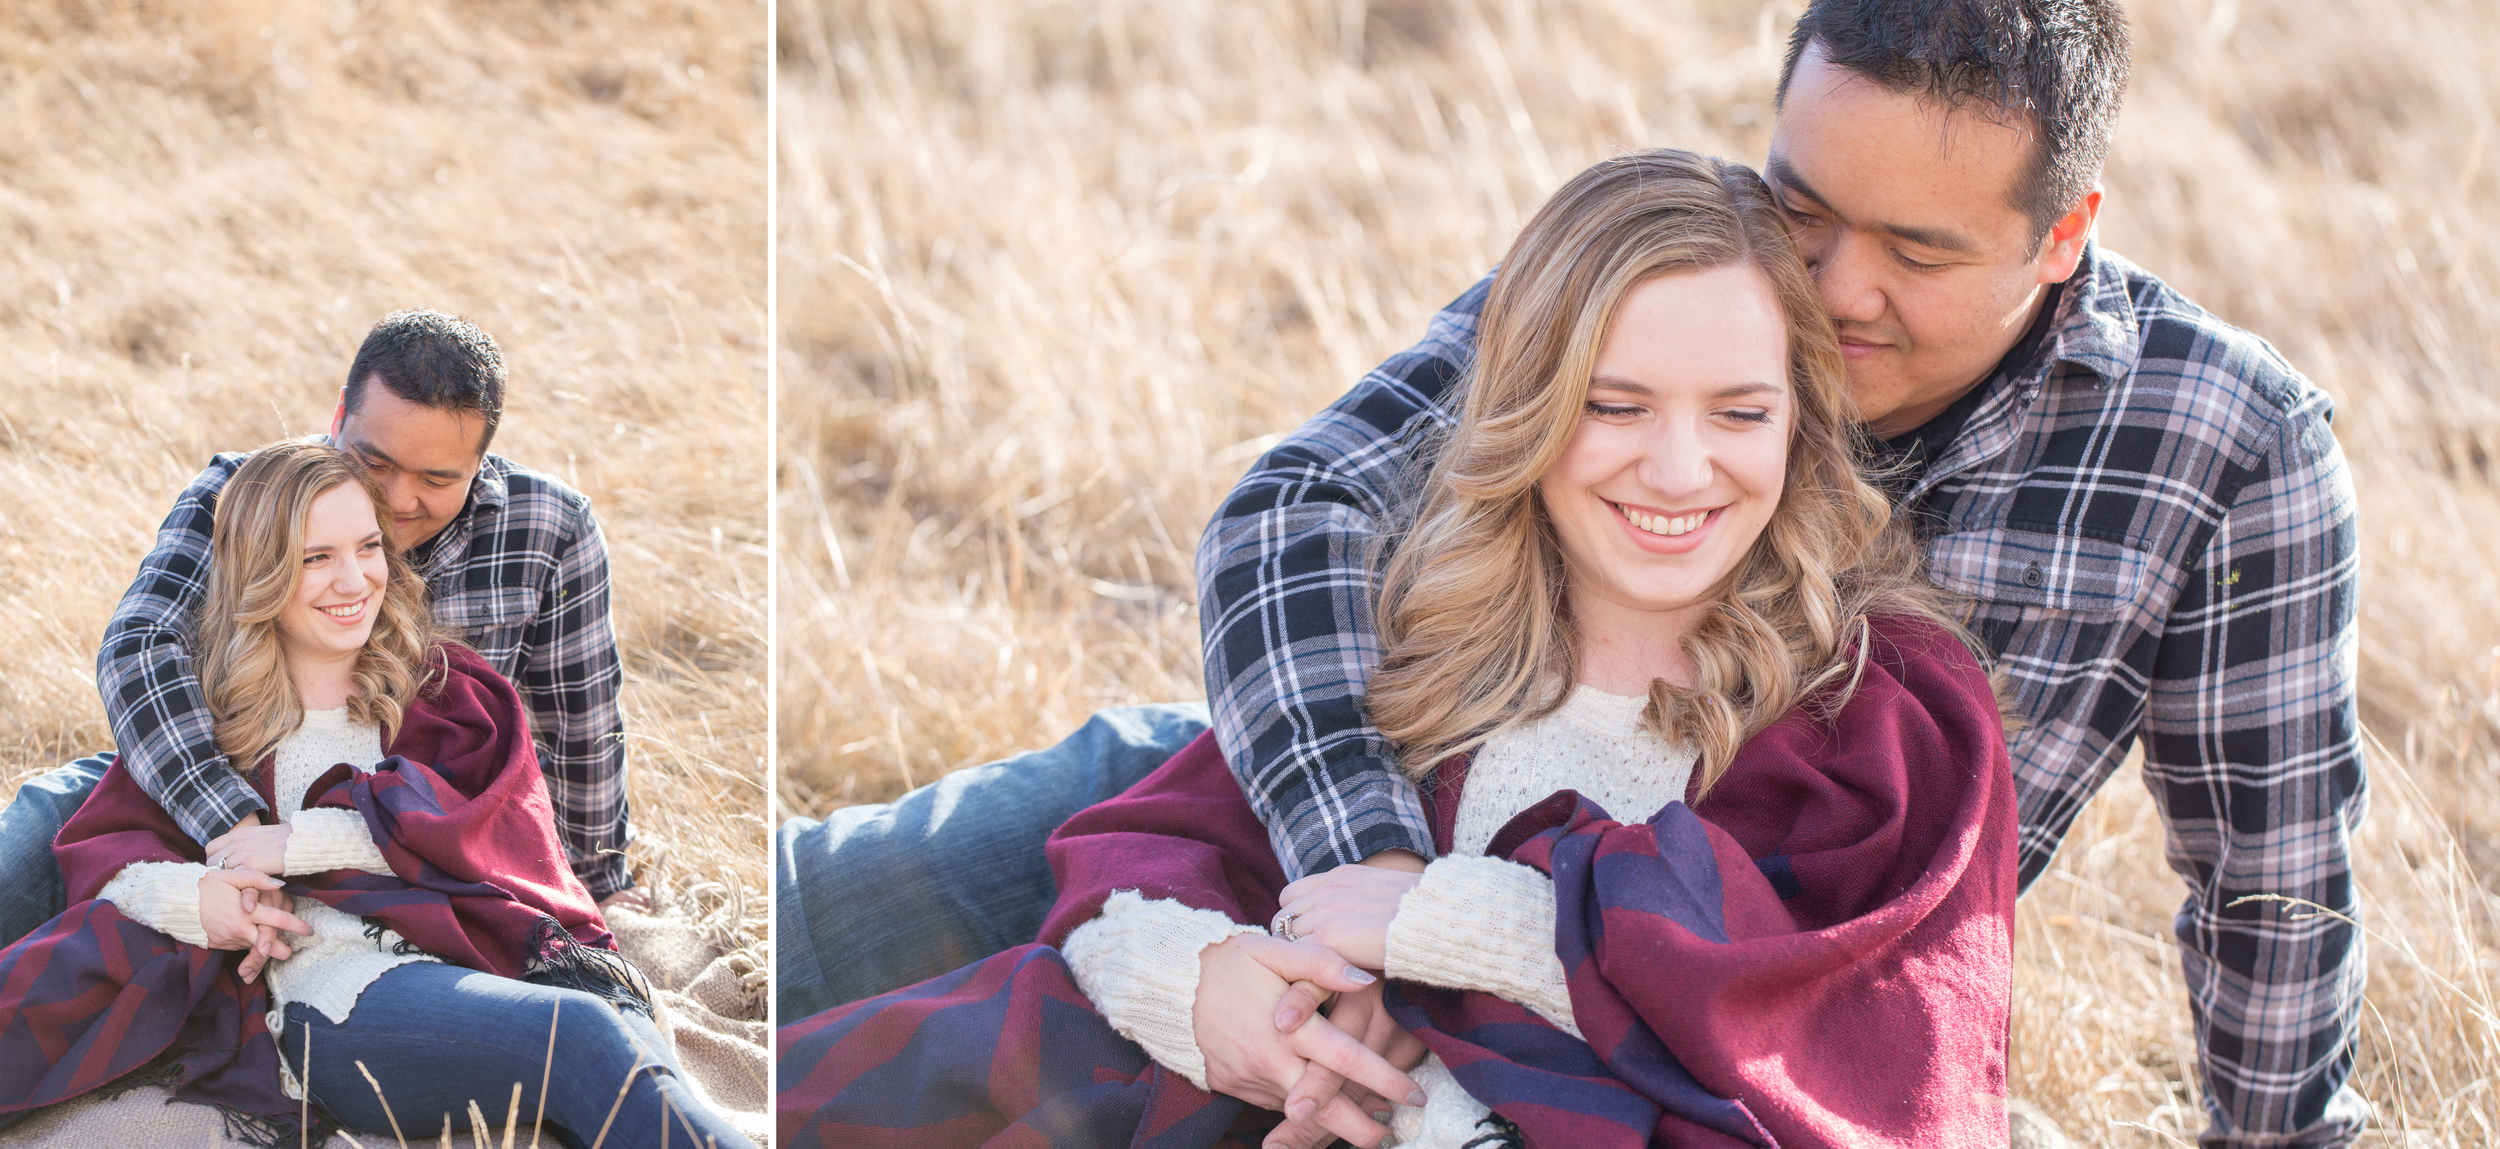 North Glenmore Park engagement photography with picnic blanket